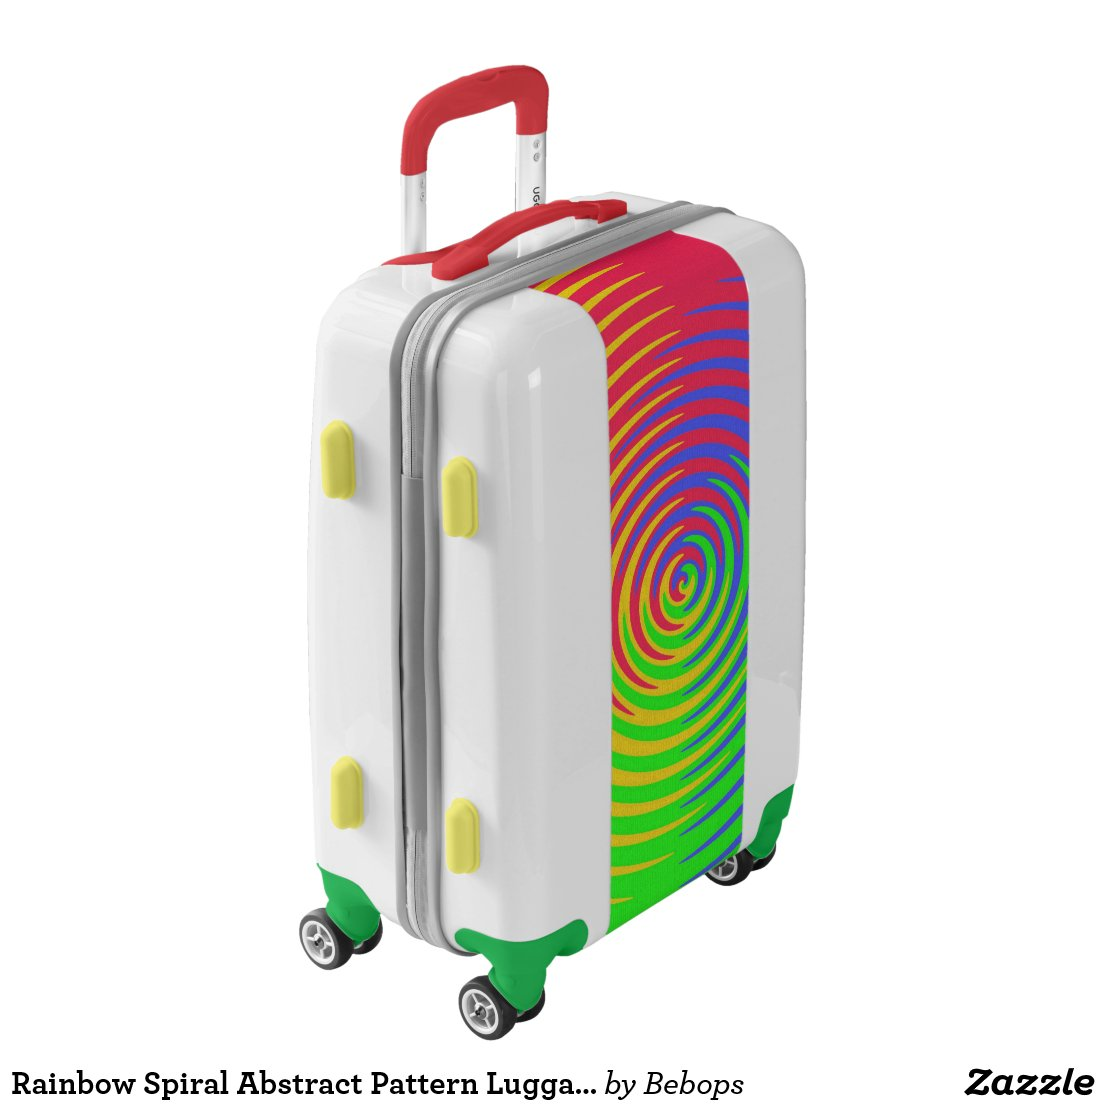 Rainbow Spiral Abstract Pattern Luggage